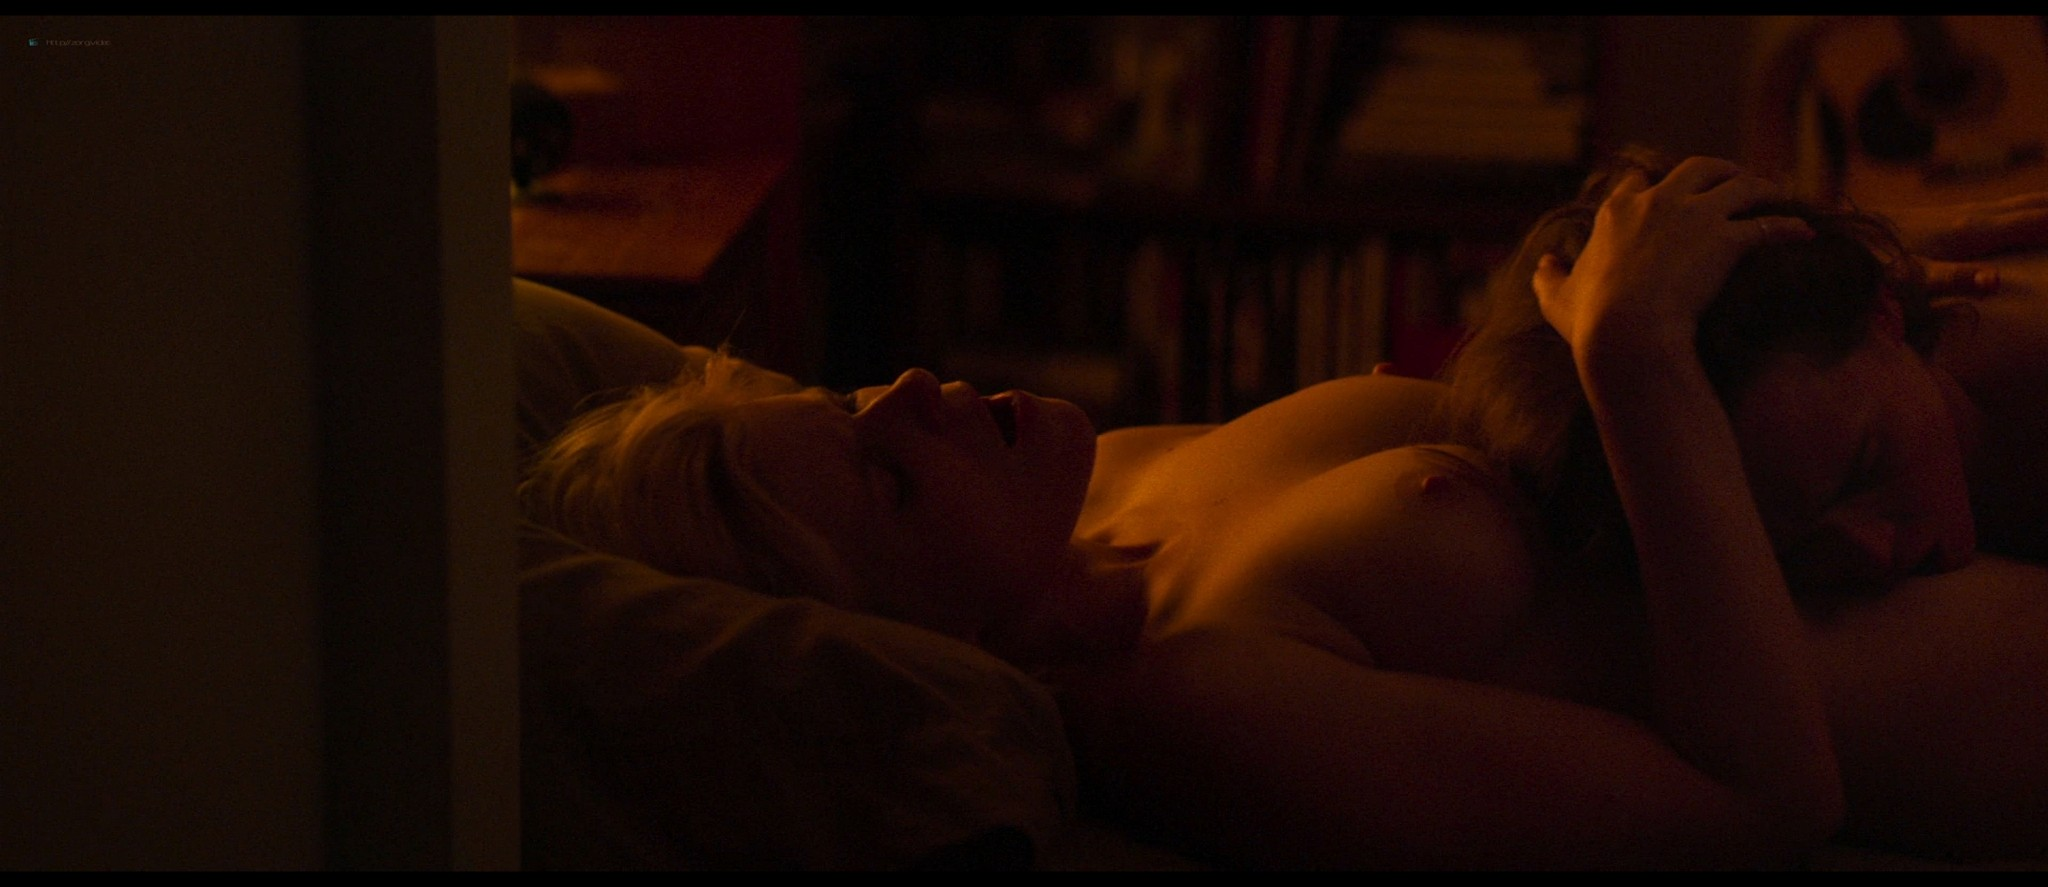 Kate Mara nude topless and lesbian sex with Ellen Page - My Days Of Mercy (2019) HD 1080p BluRay (5)